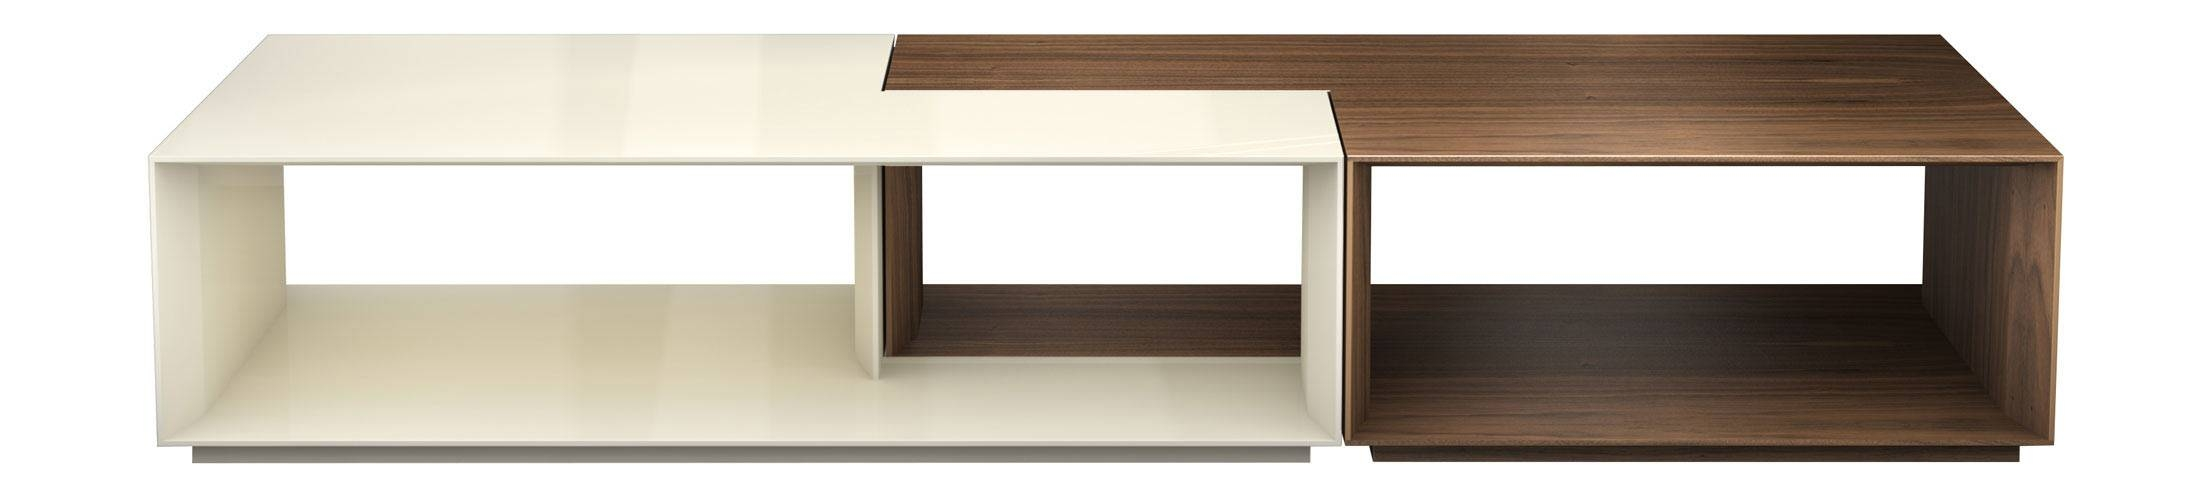 Putney Jigsaw Coffee Table Walnut And Beige Lacquermodloft With Beige Coffee Tables (View 23 of 30)